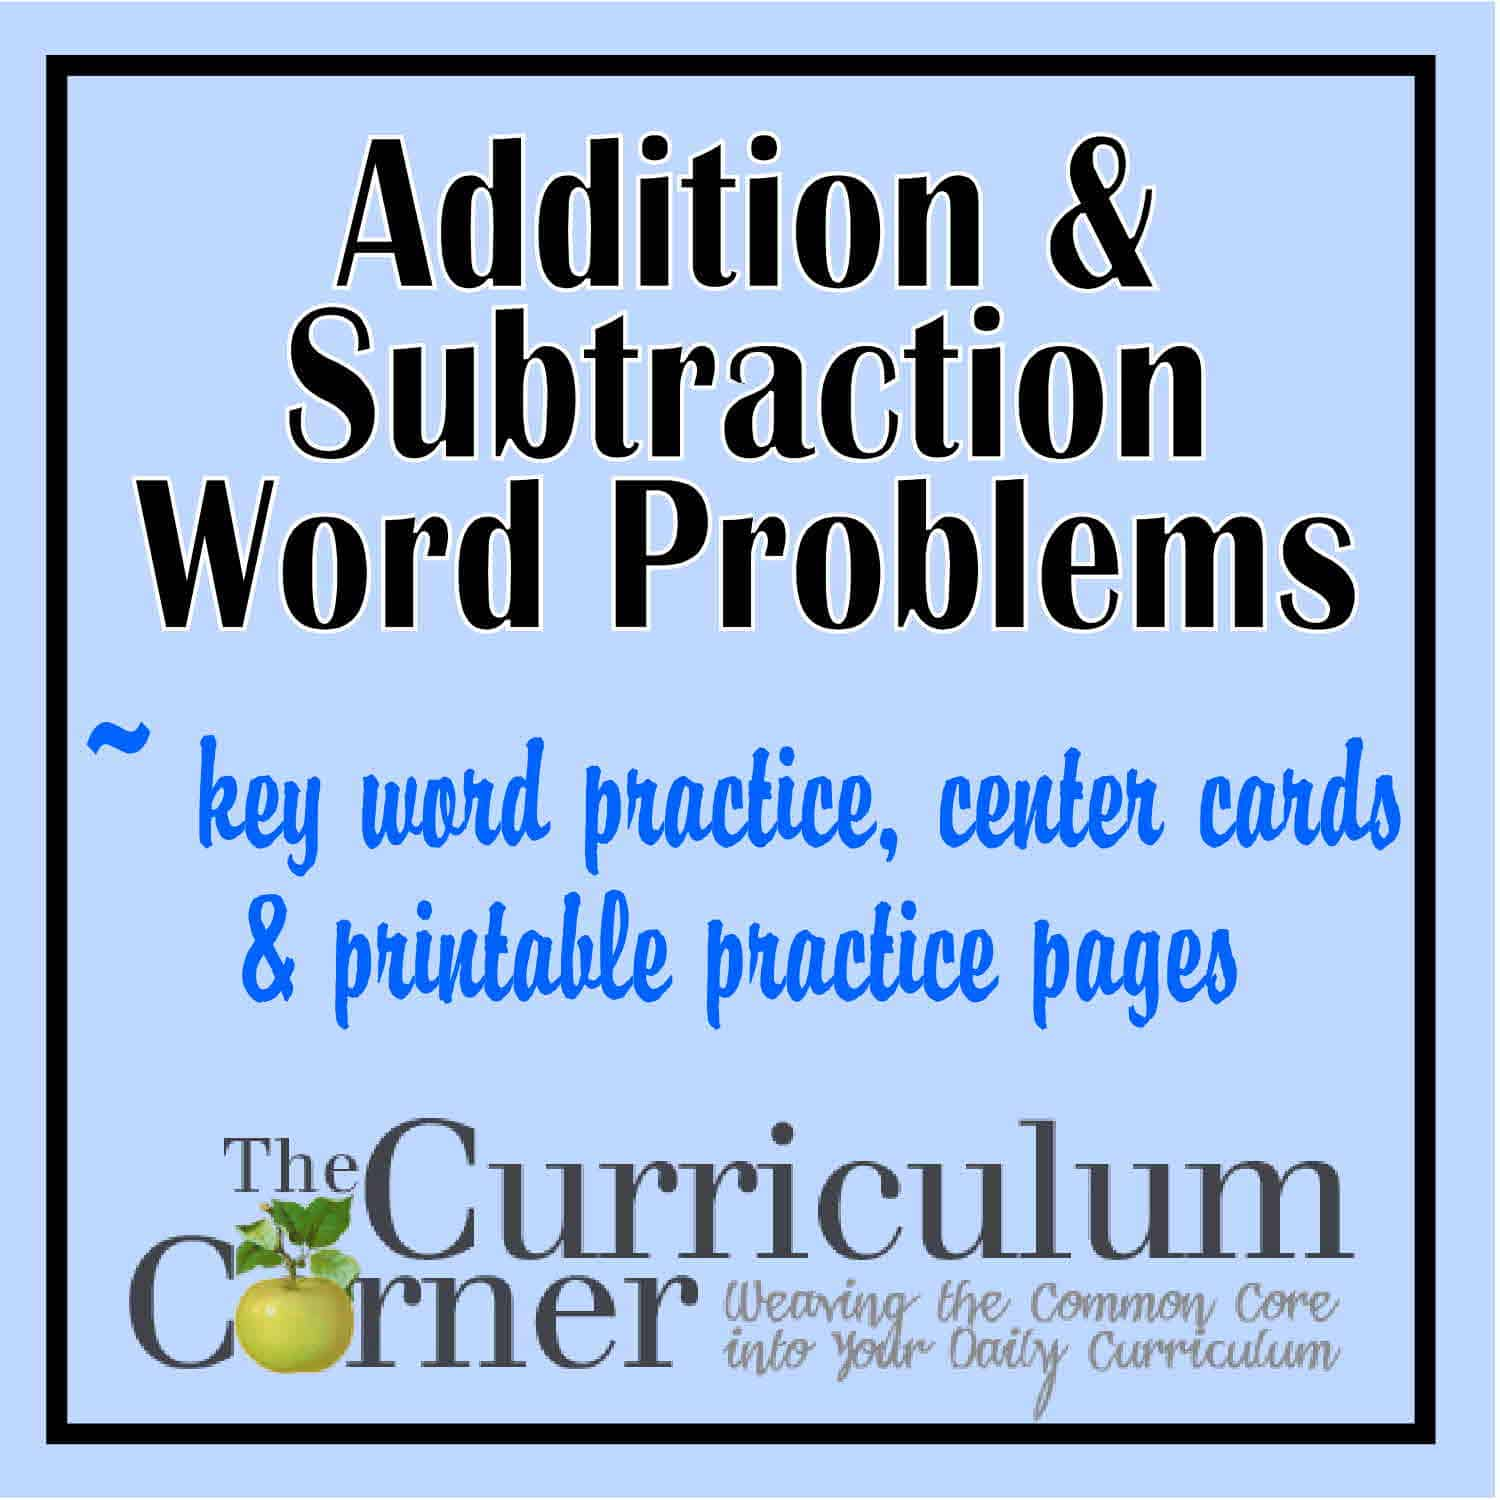 worksheet Addition And Subtraction Word Problems addition subtraction word problems the curriculum corner 123